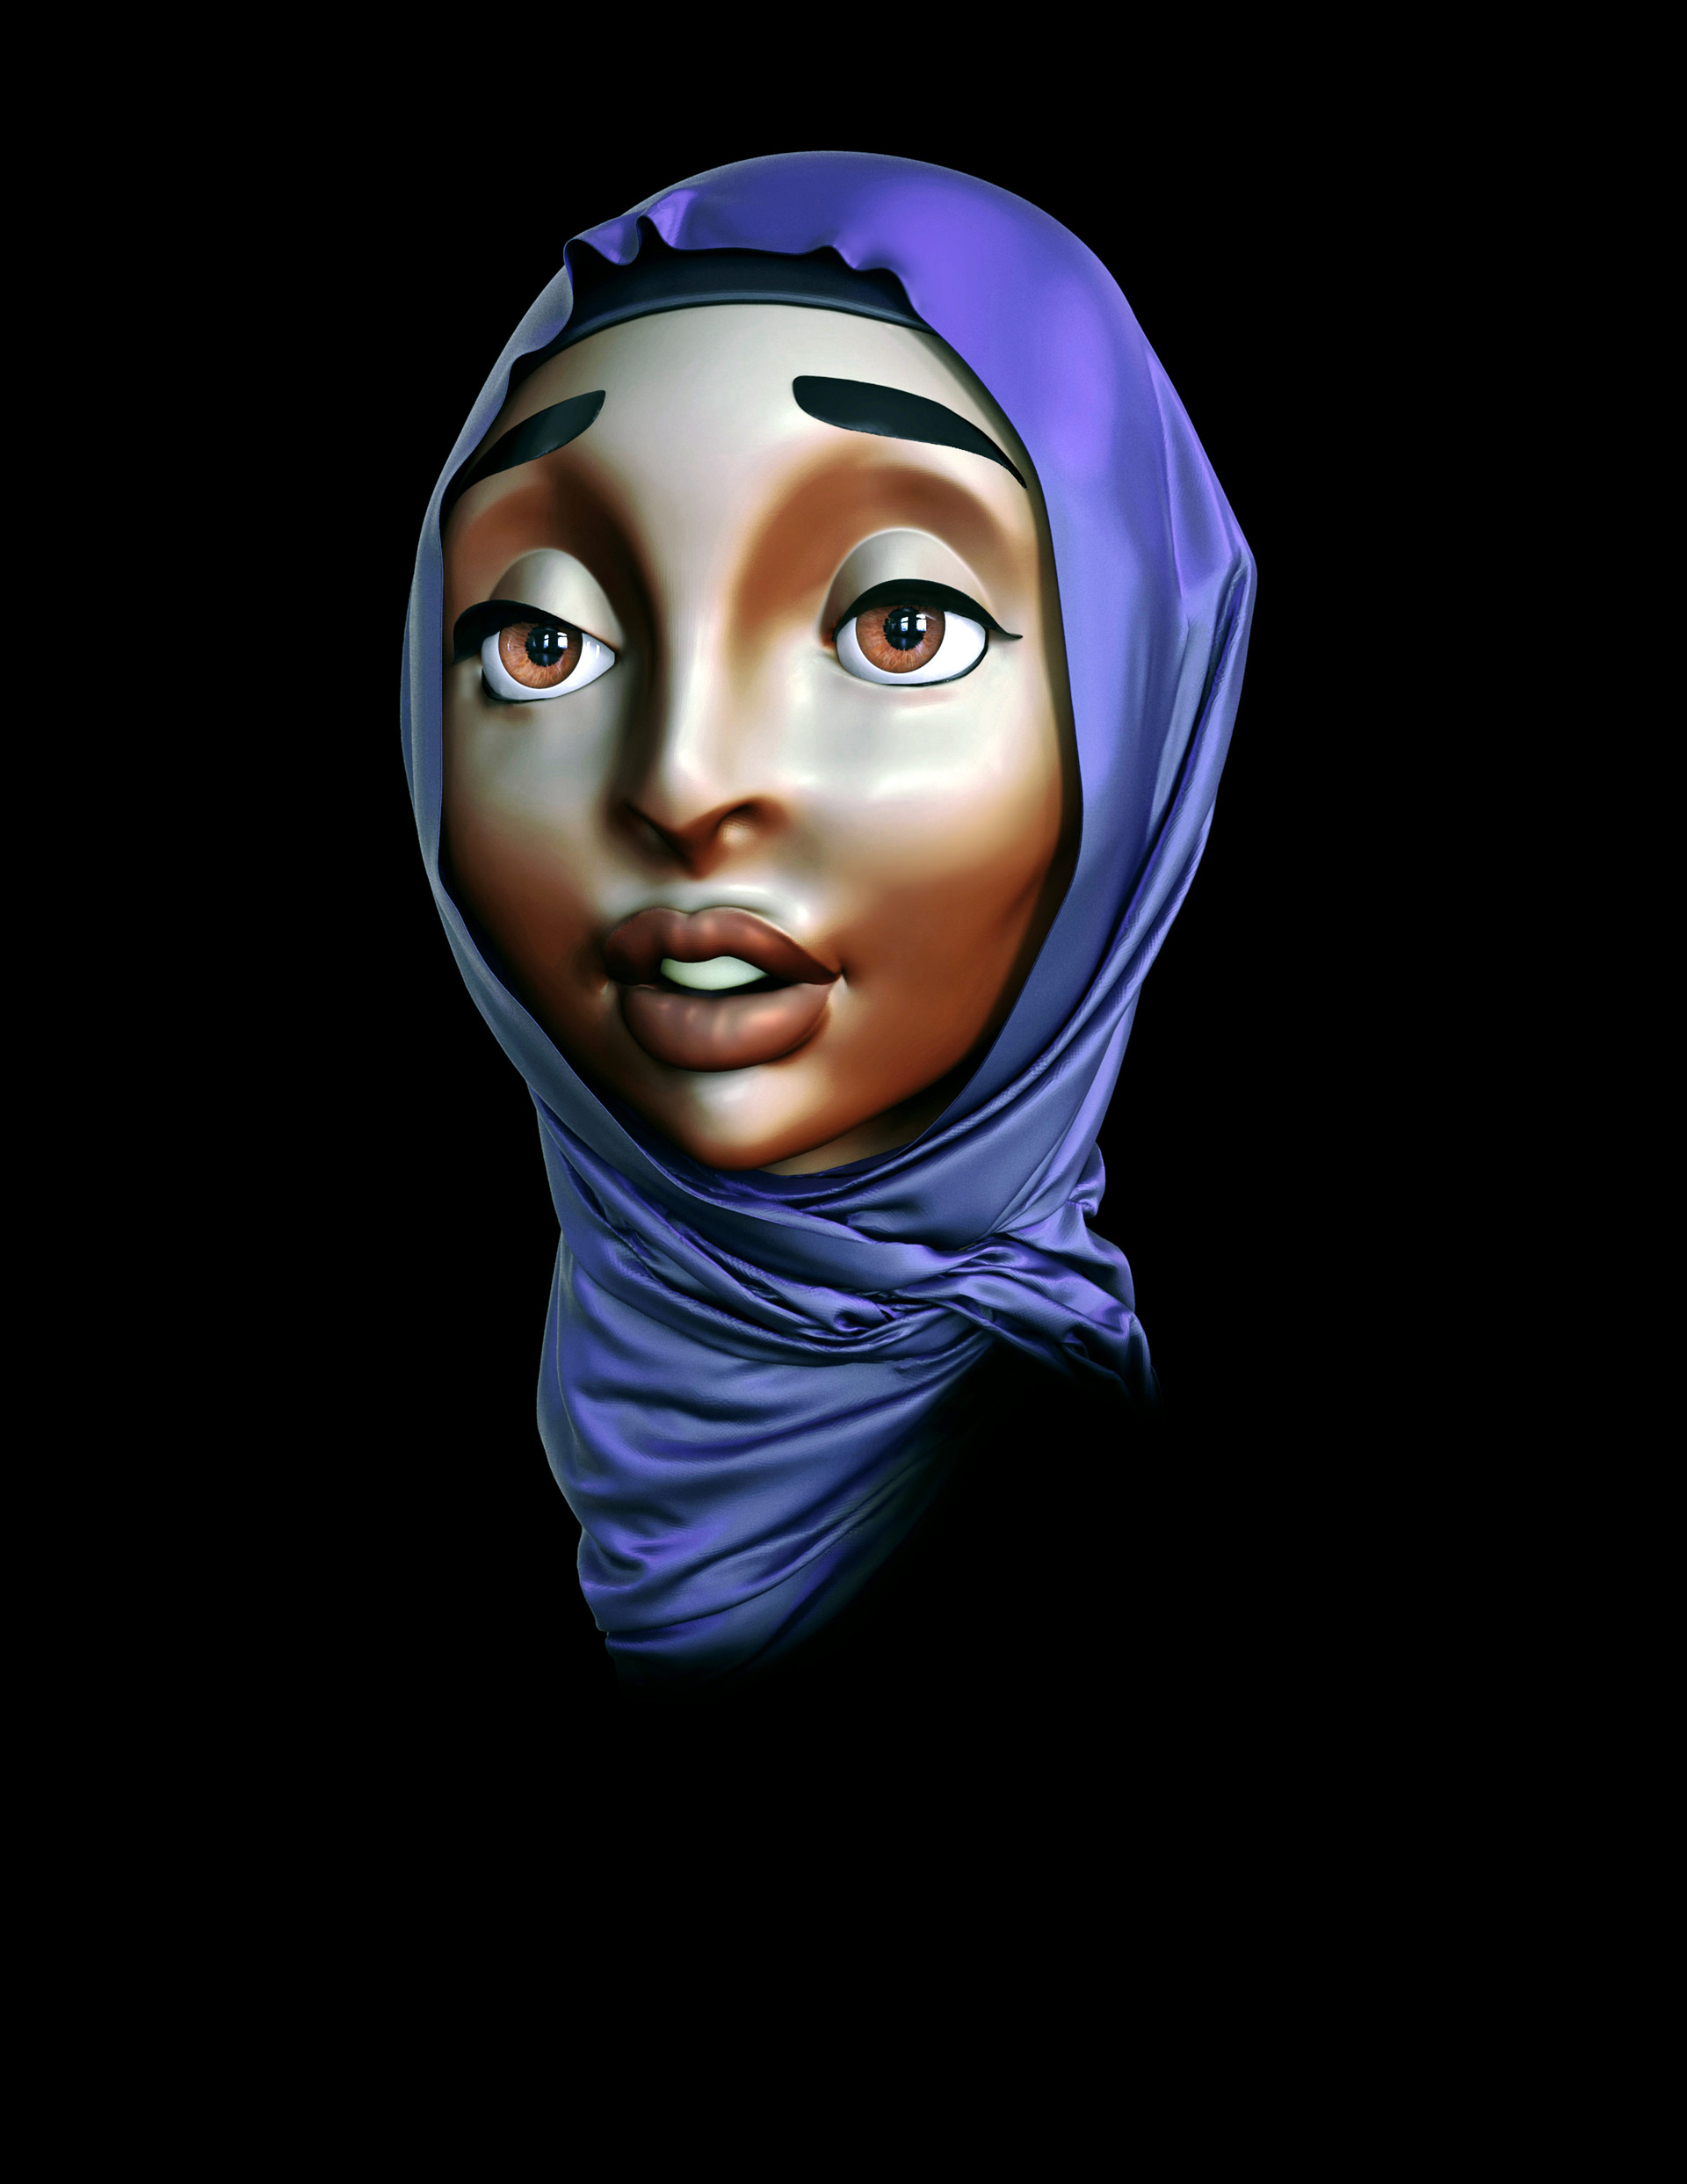 Ejay russell hijab girl 40